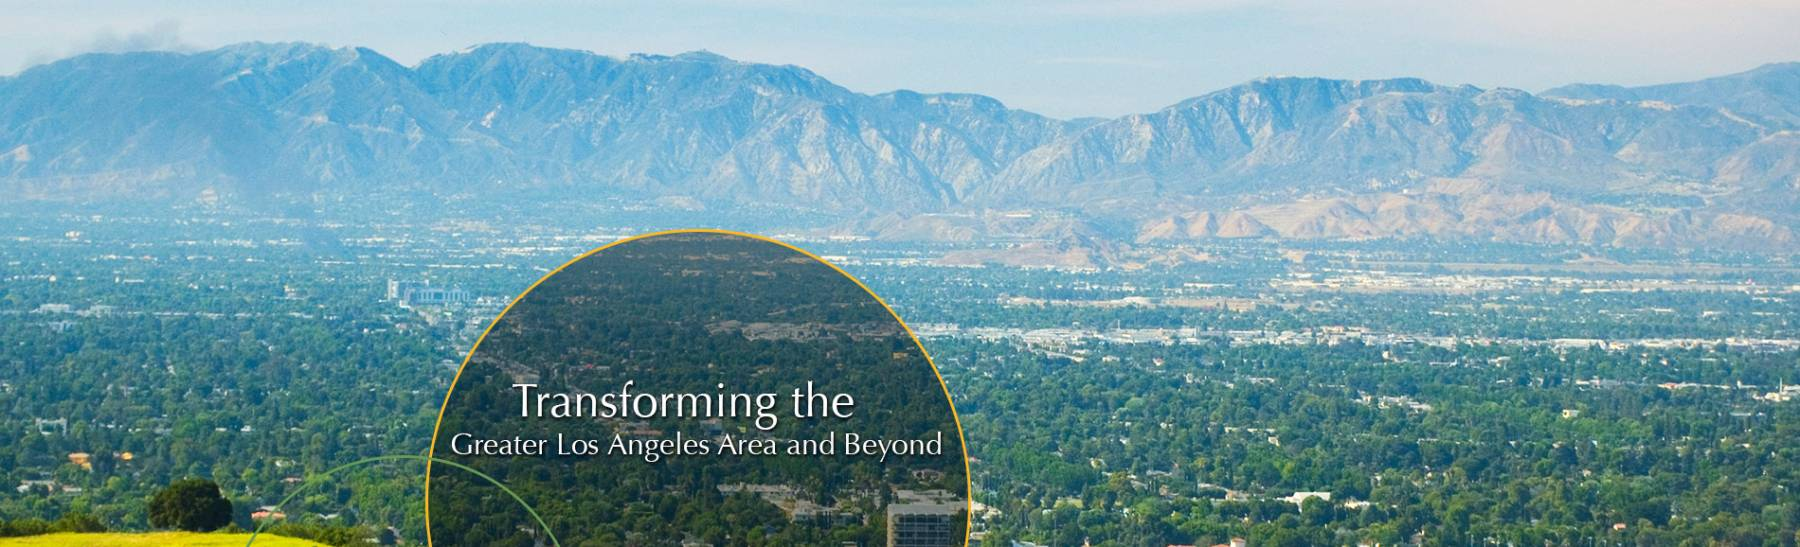 Transforming the greater Los Angeles area and beyond.